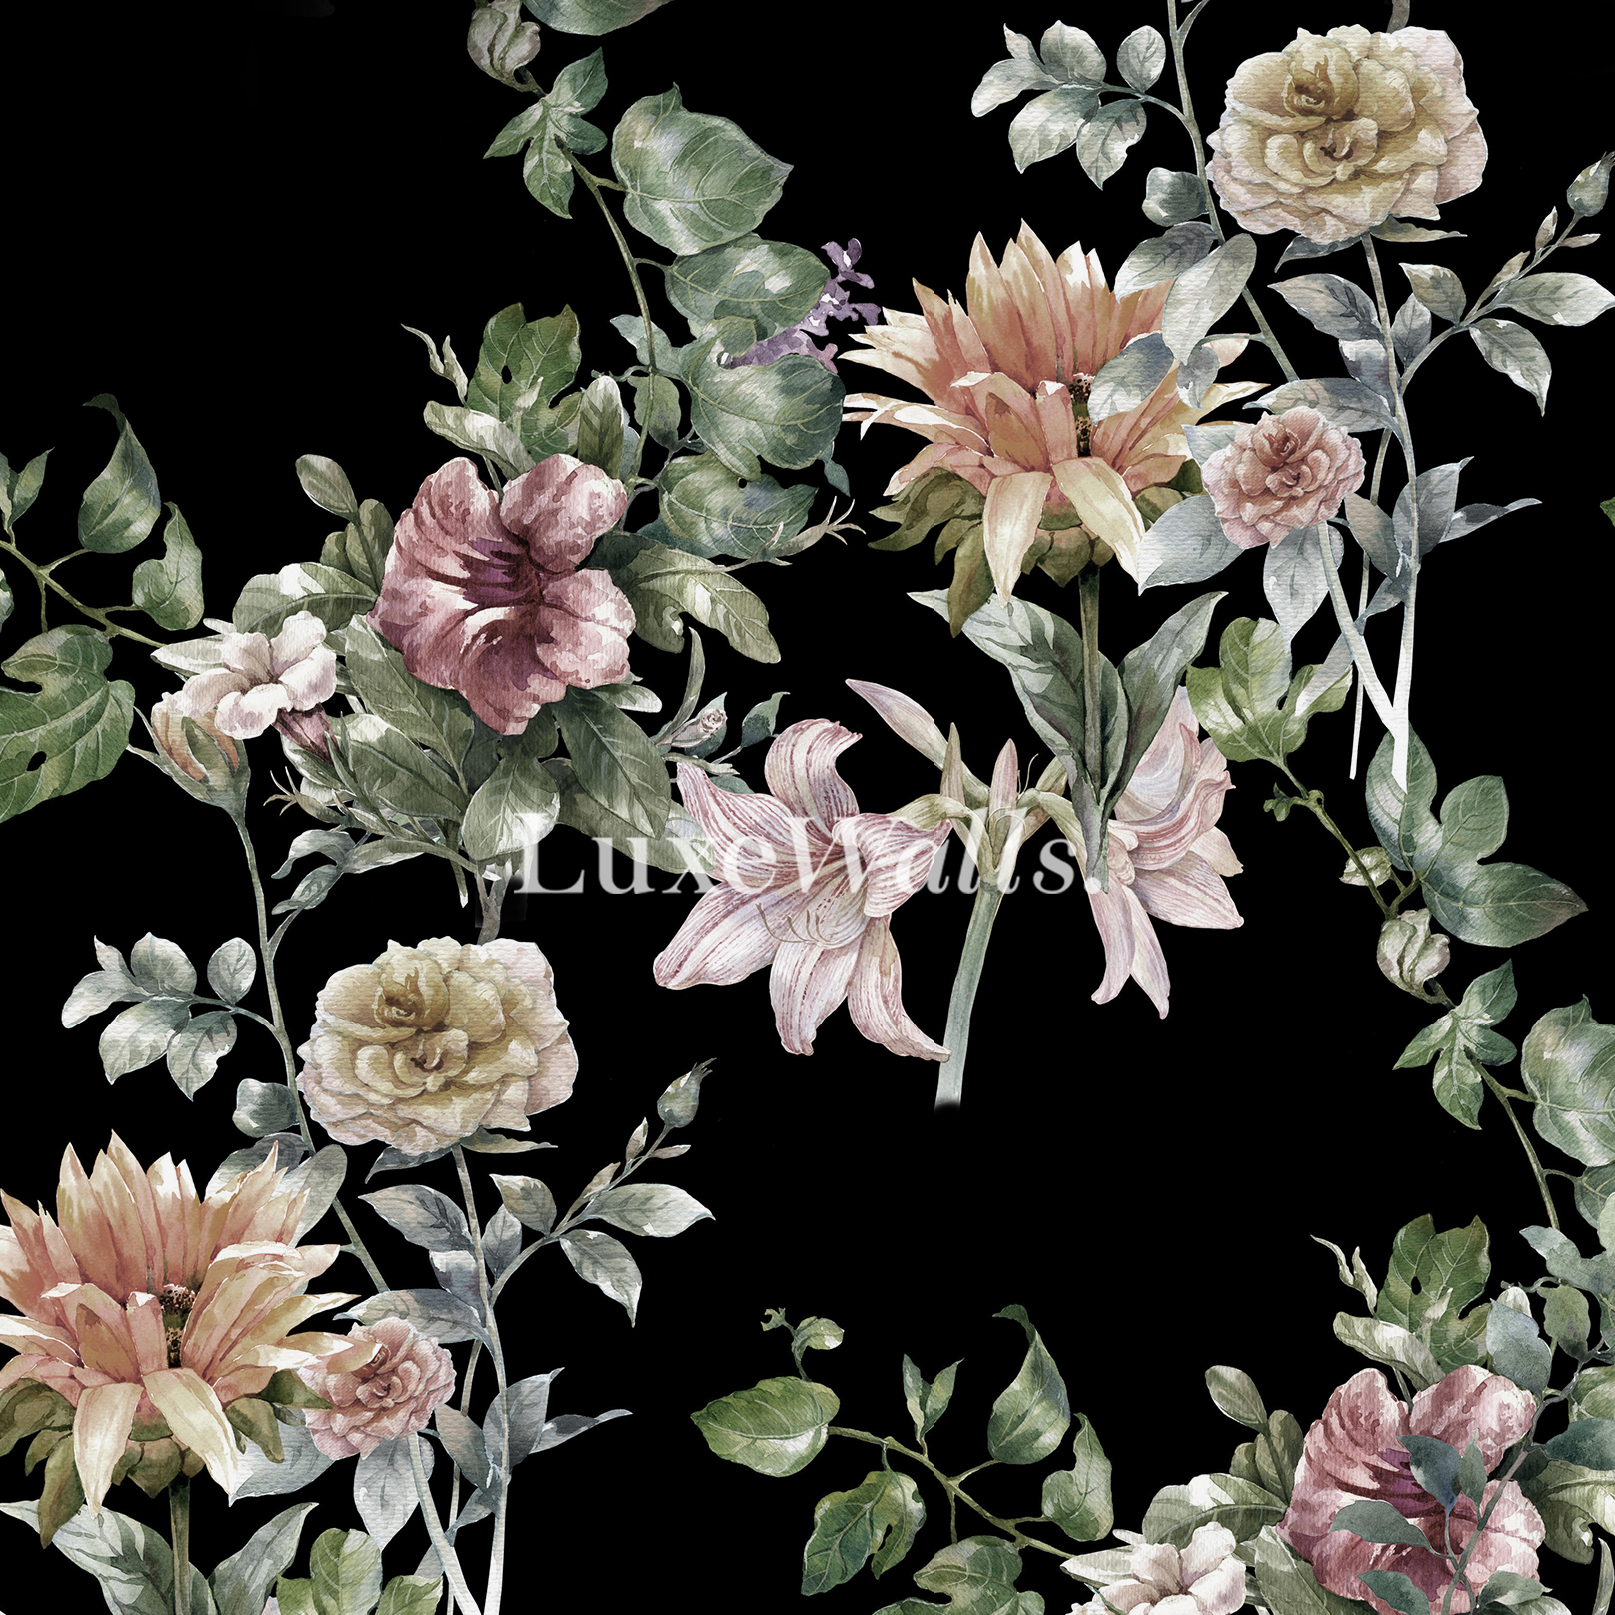 floral wallpaper - removable and reusable wallpaper - shop now!